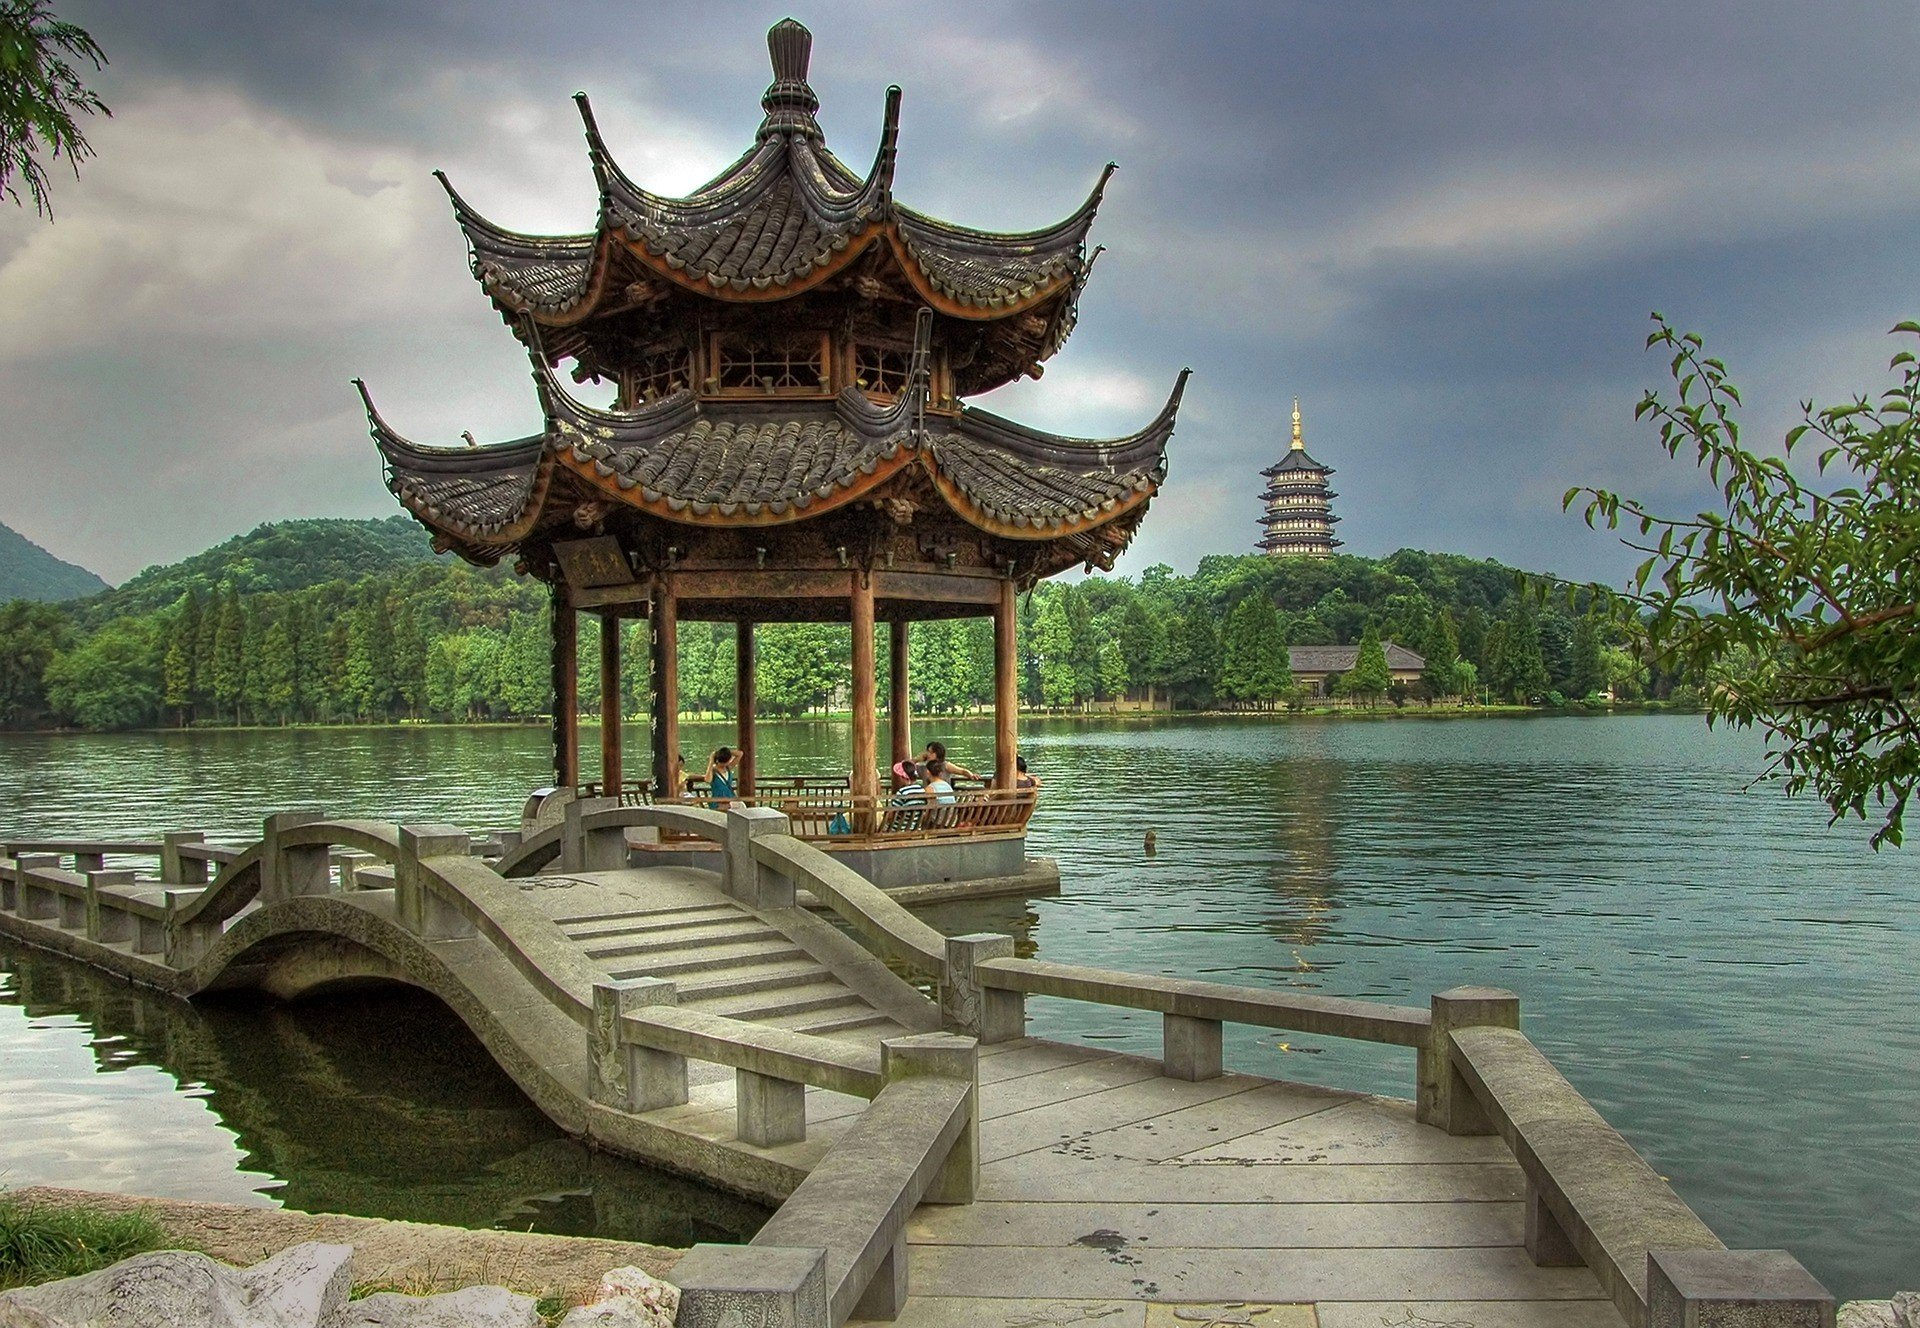 Hangzhou West Lake in Zhejiang